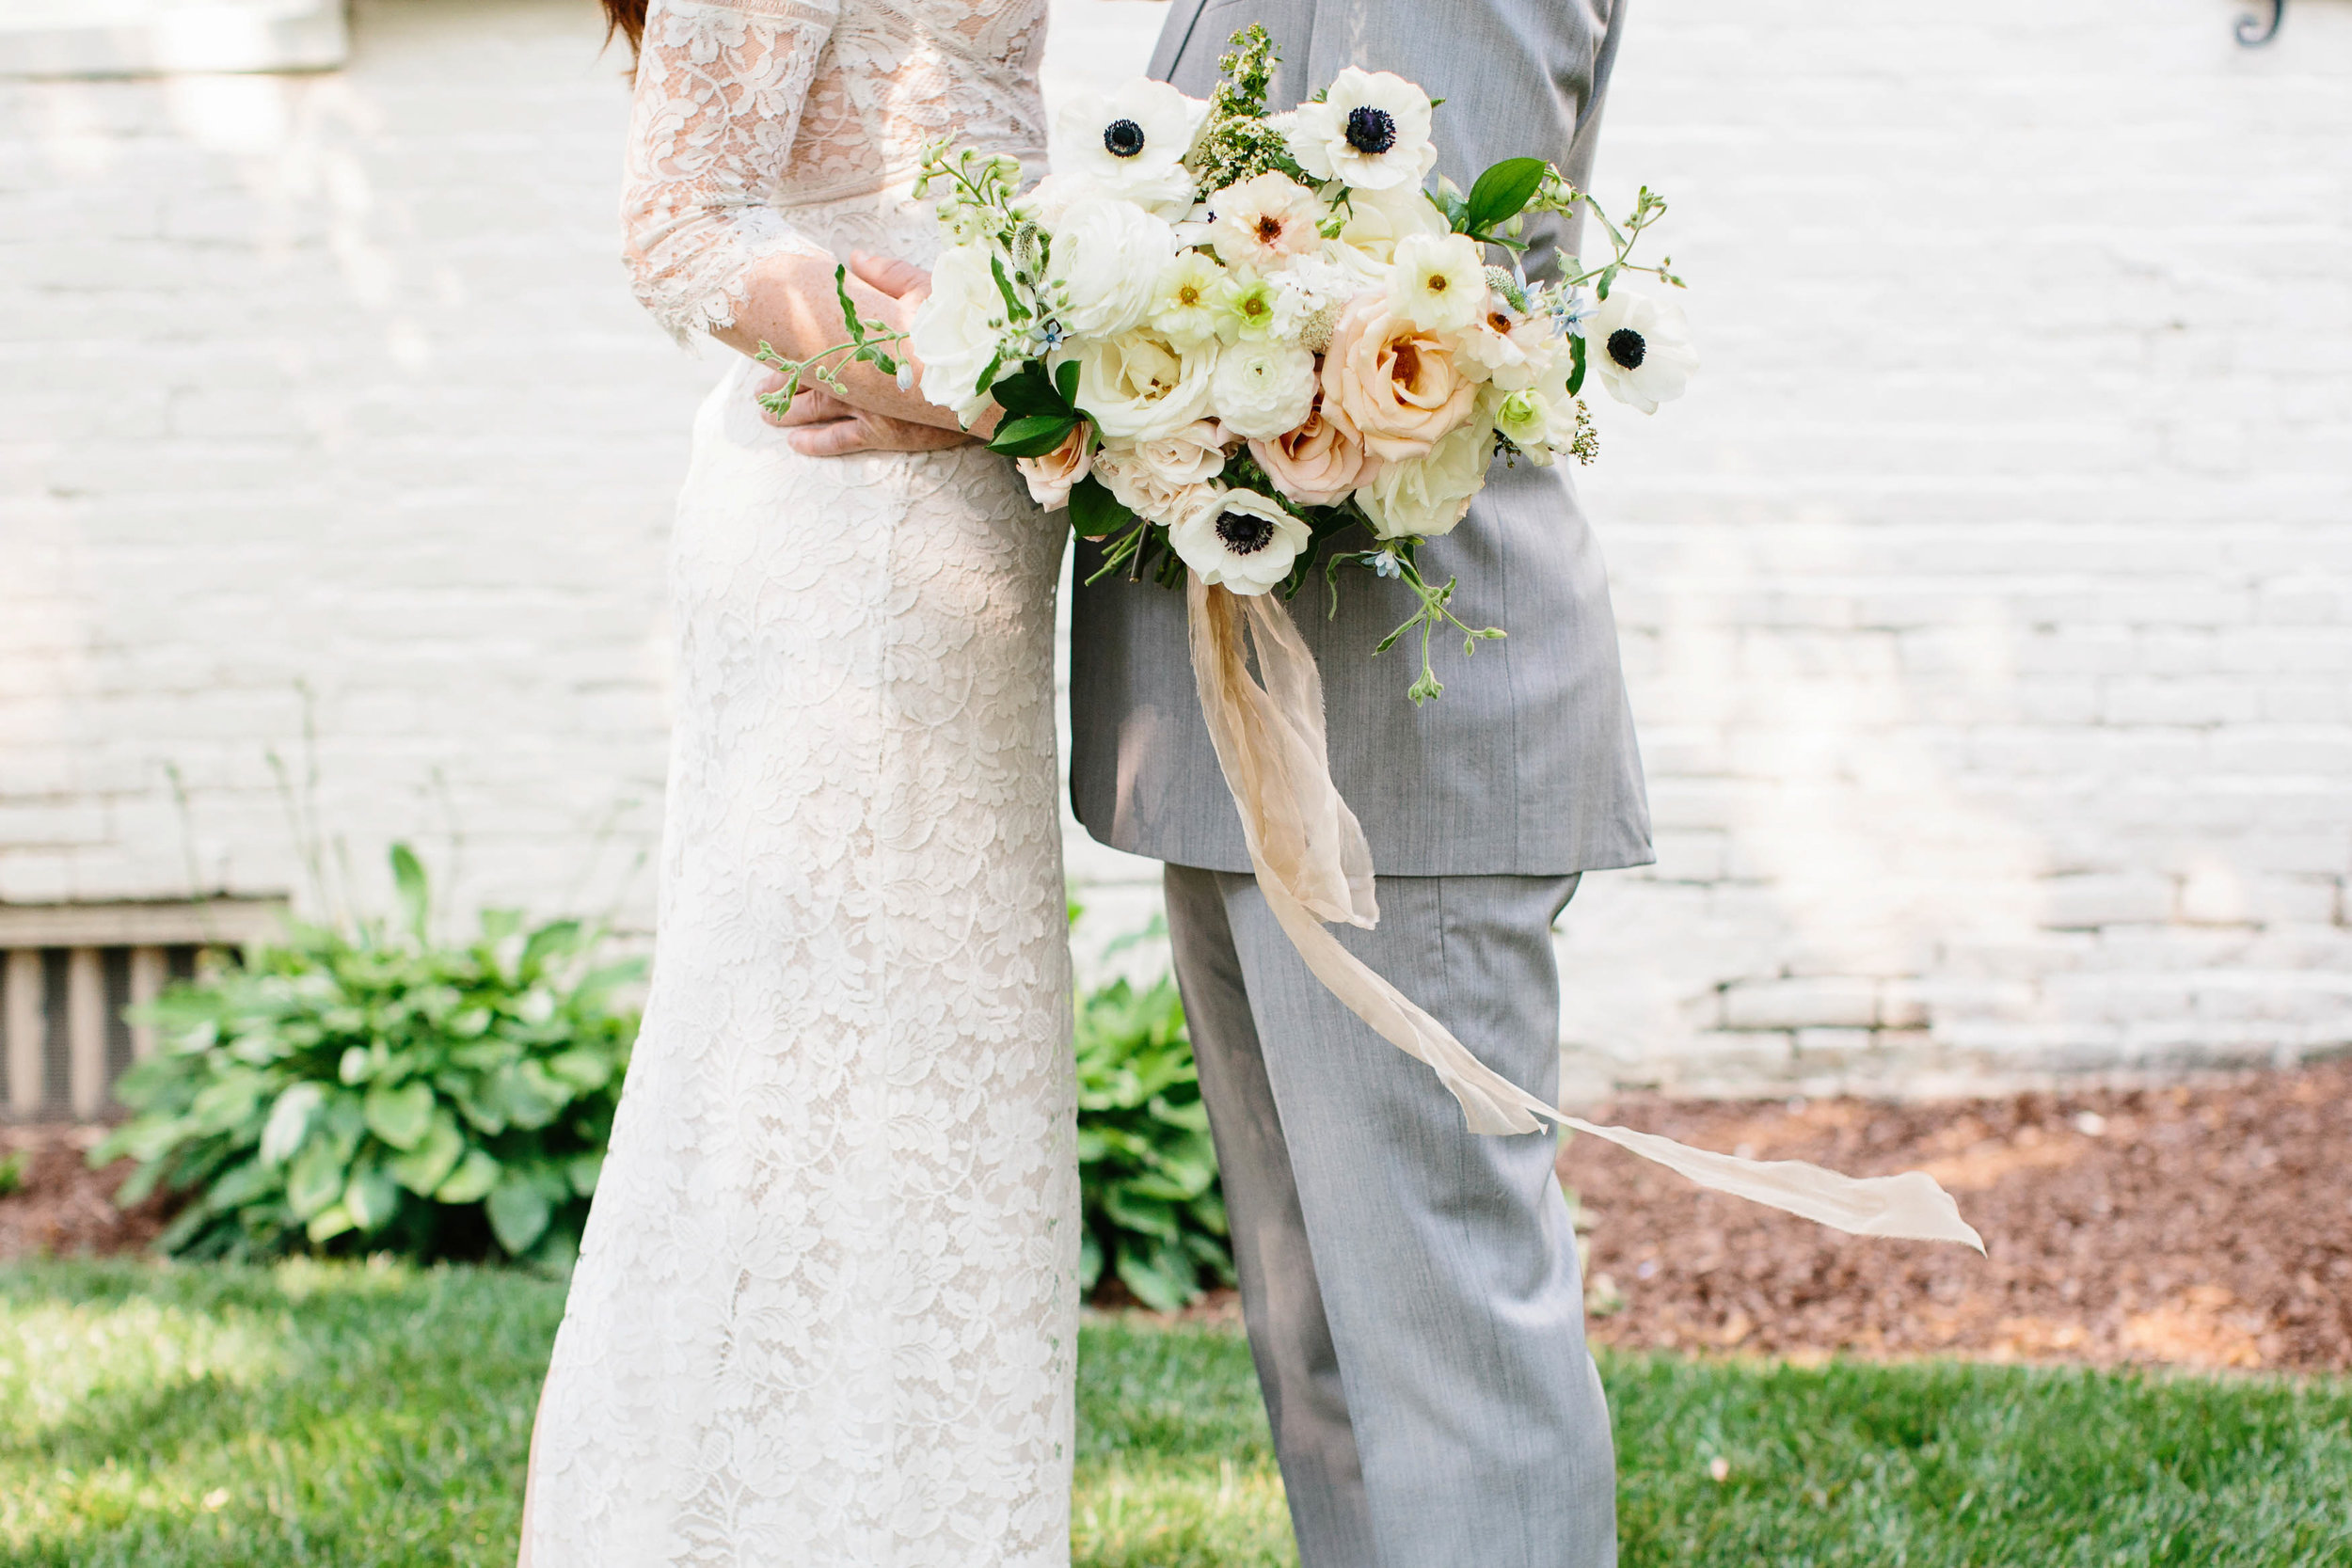 flowers_wedding_bridal_floridesigns_huntsville_alabama (11 of 44).jpg